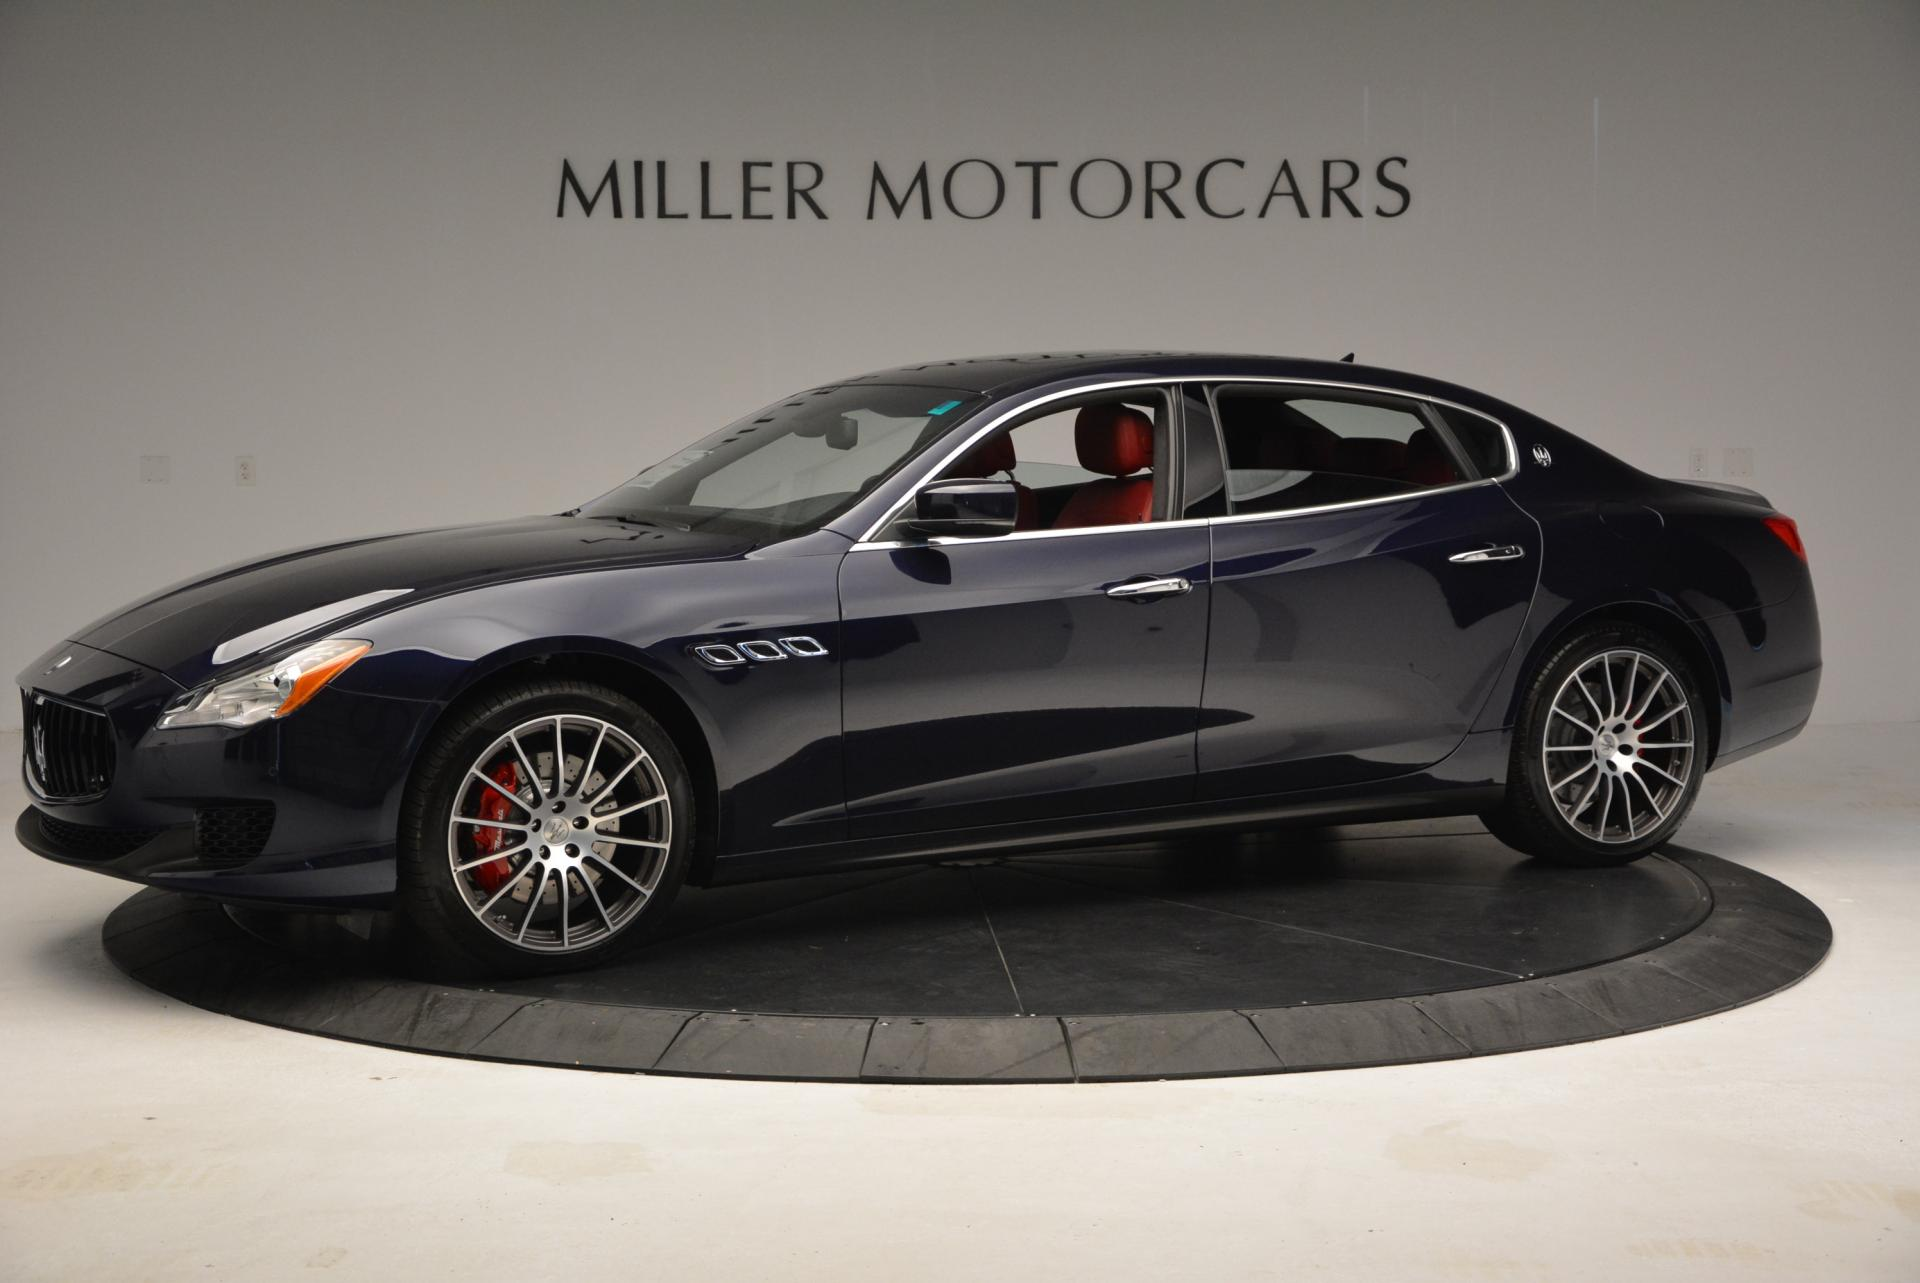 New 2016 Maserati Quattroporte S Q4 ******* DEALER'S DEMO